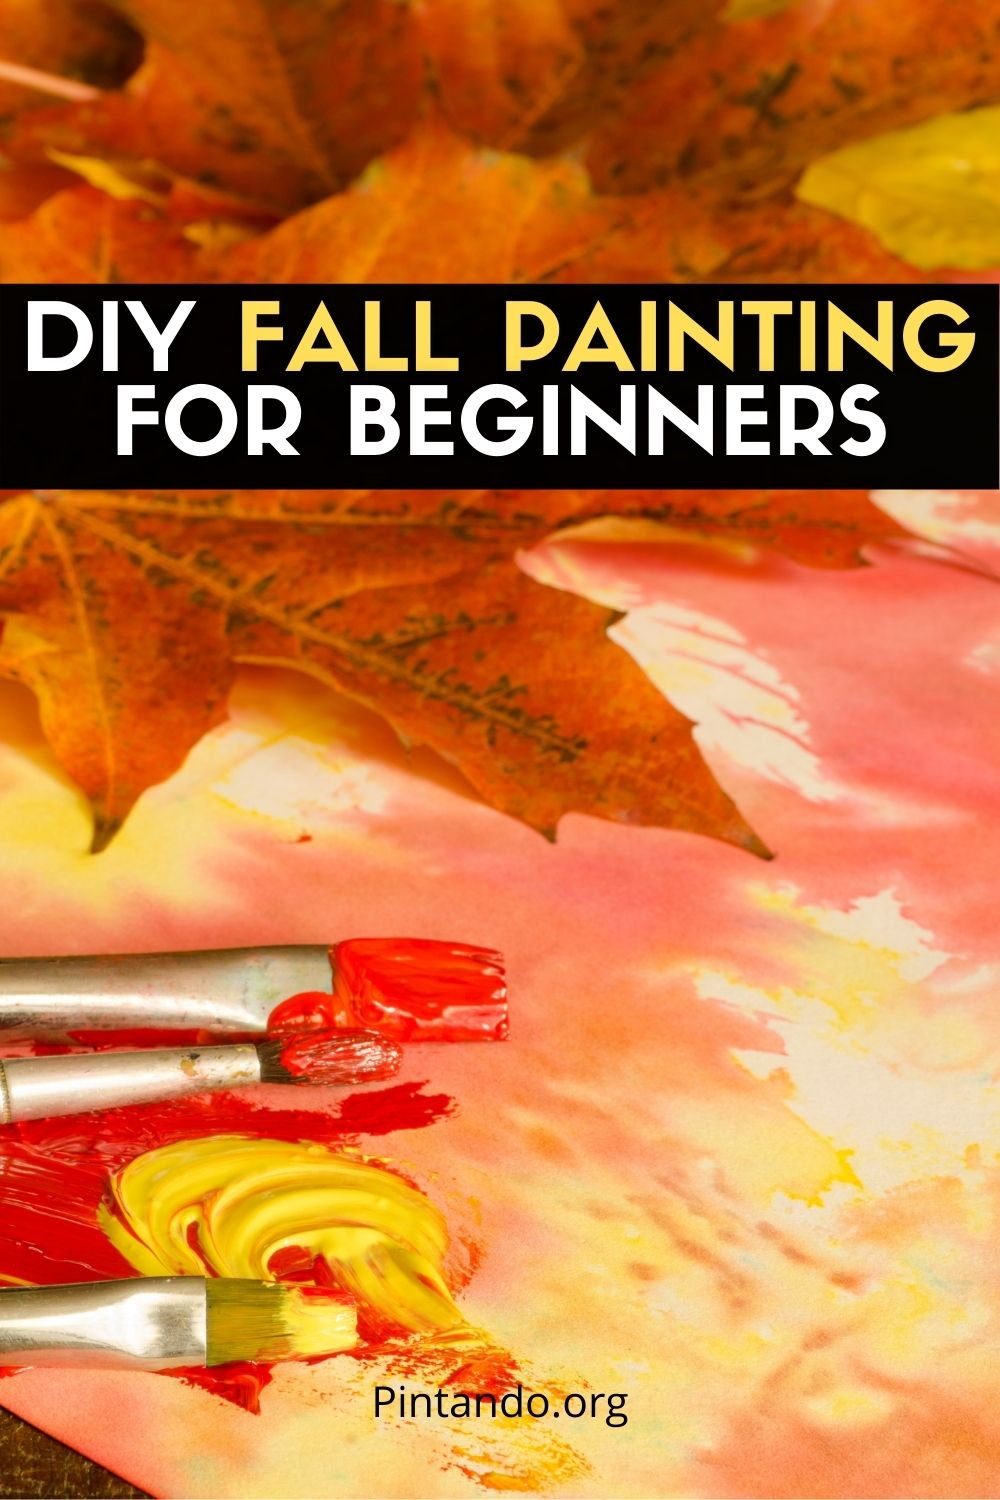 DIY FALL PAINTING FOR BEGINNERS (1)